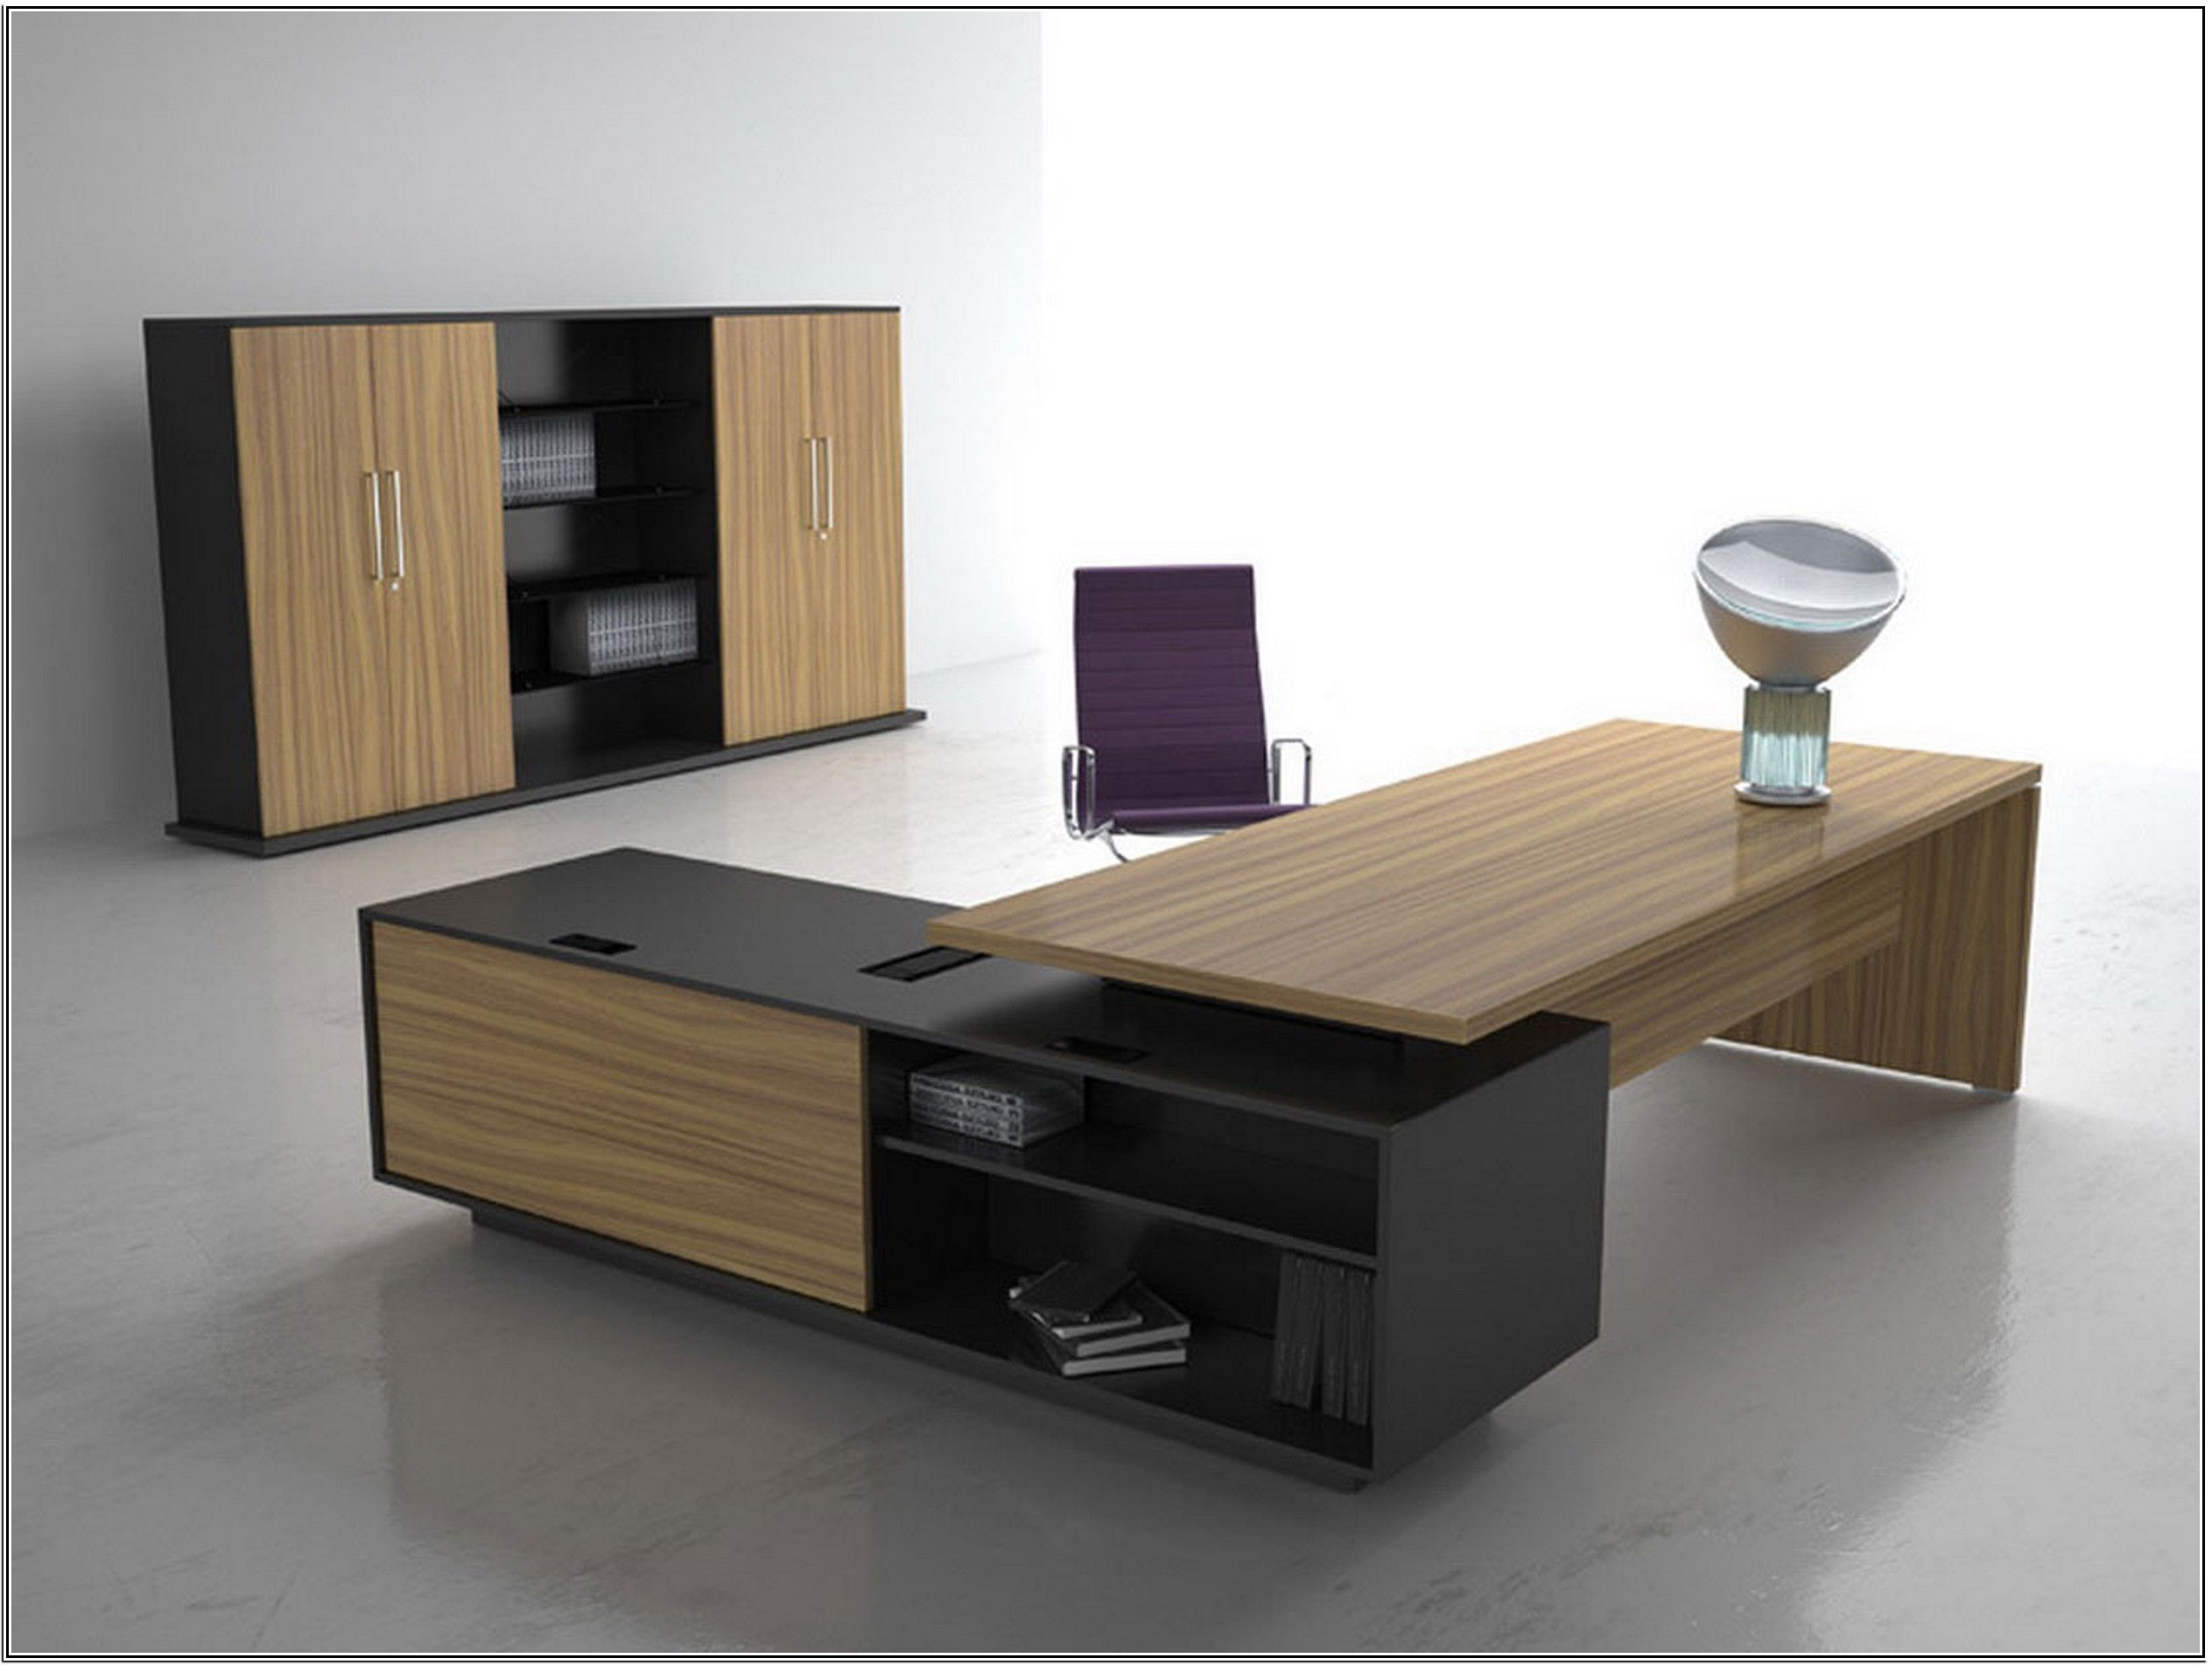 Luxury Modern Home Office Desk Design Idea In Brown And Black With Open Shelves Contemporary Office Furniture Home Office Furniture Design Office Table Design